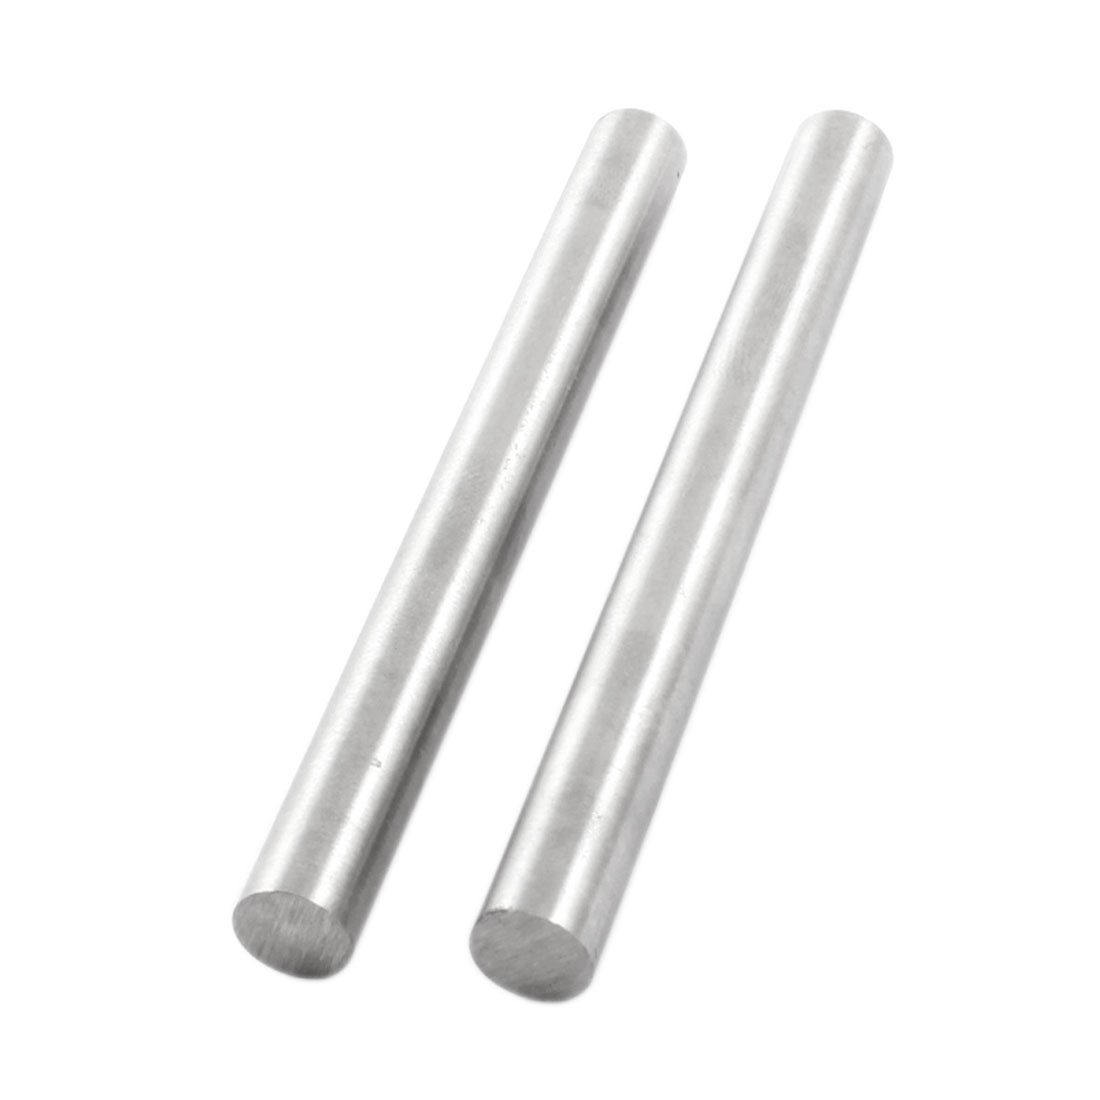 2 Pcs 9.5mm x 100mm Silver Tone HHS Straight Machine Turning Tool Round Lathe Bar Stick